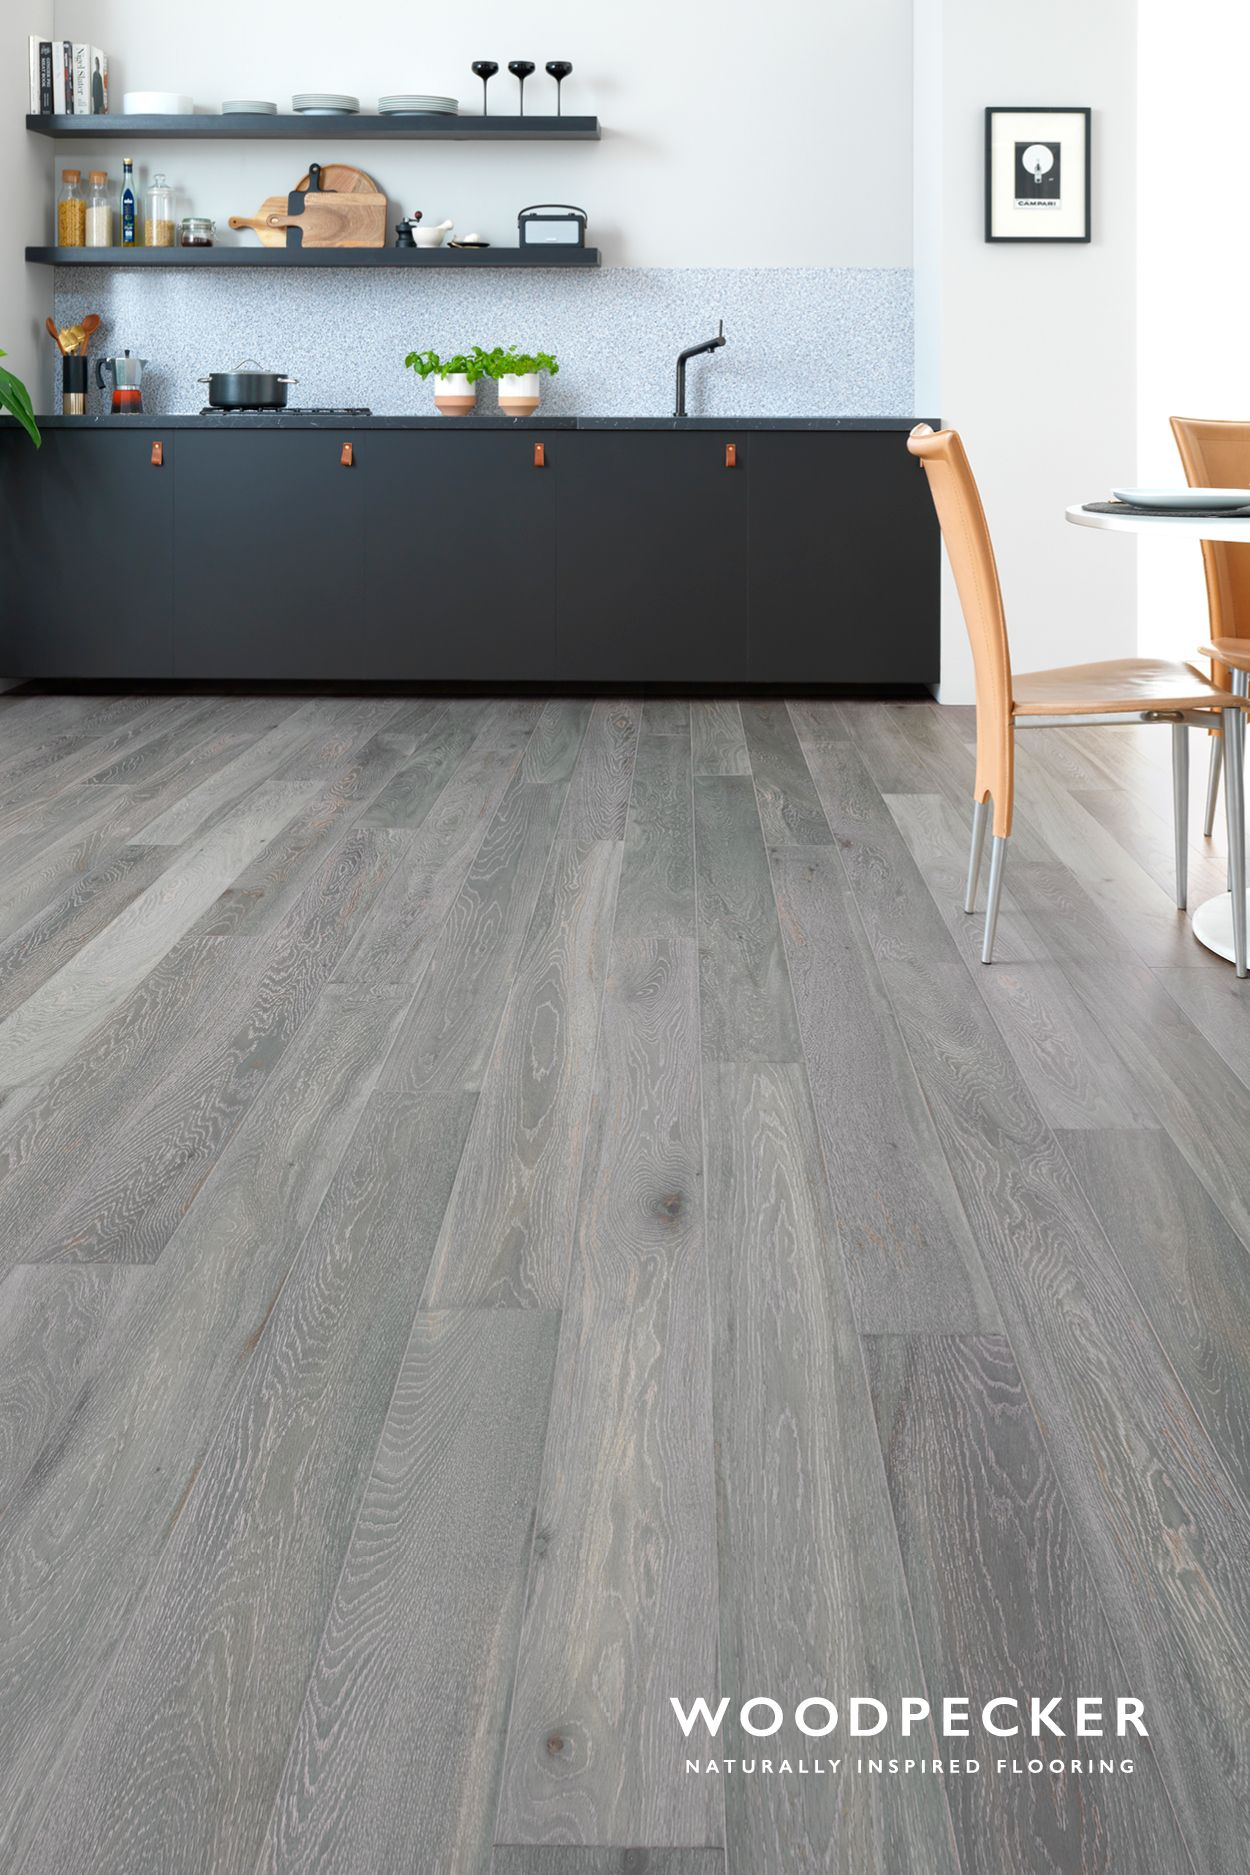 Harlech Stormy Oak Grey Kitchen Floor Flooring Hall Flooring